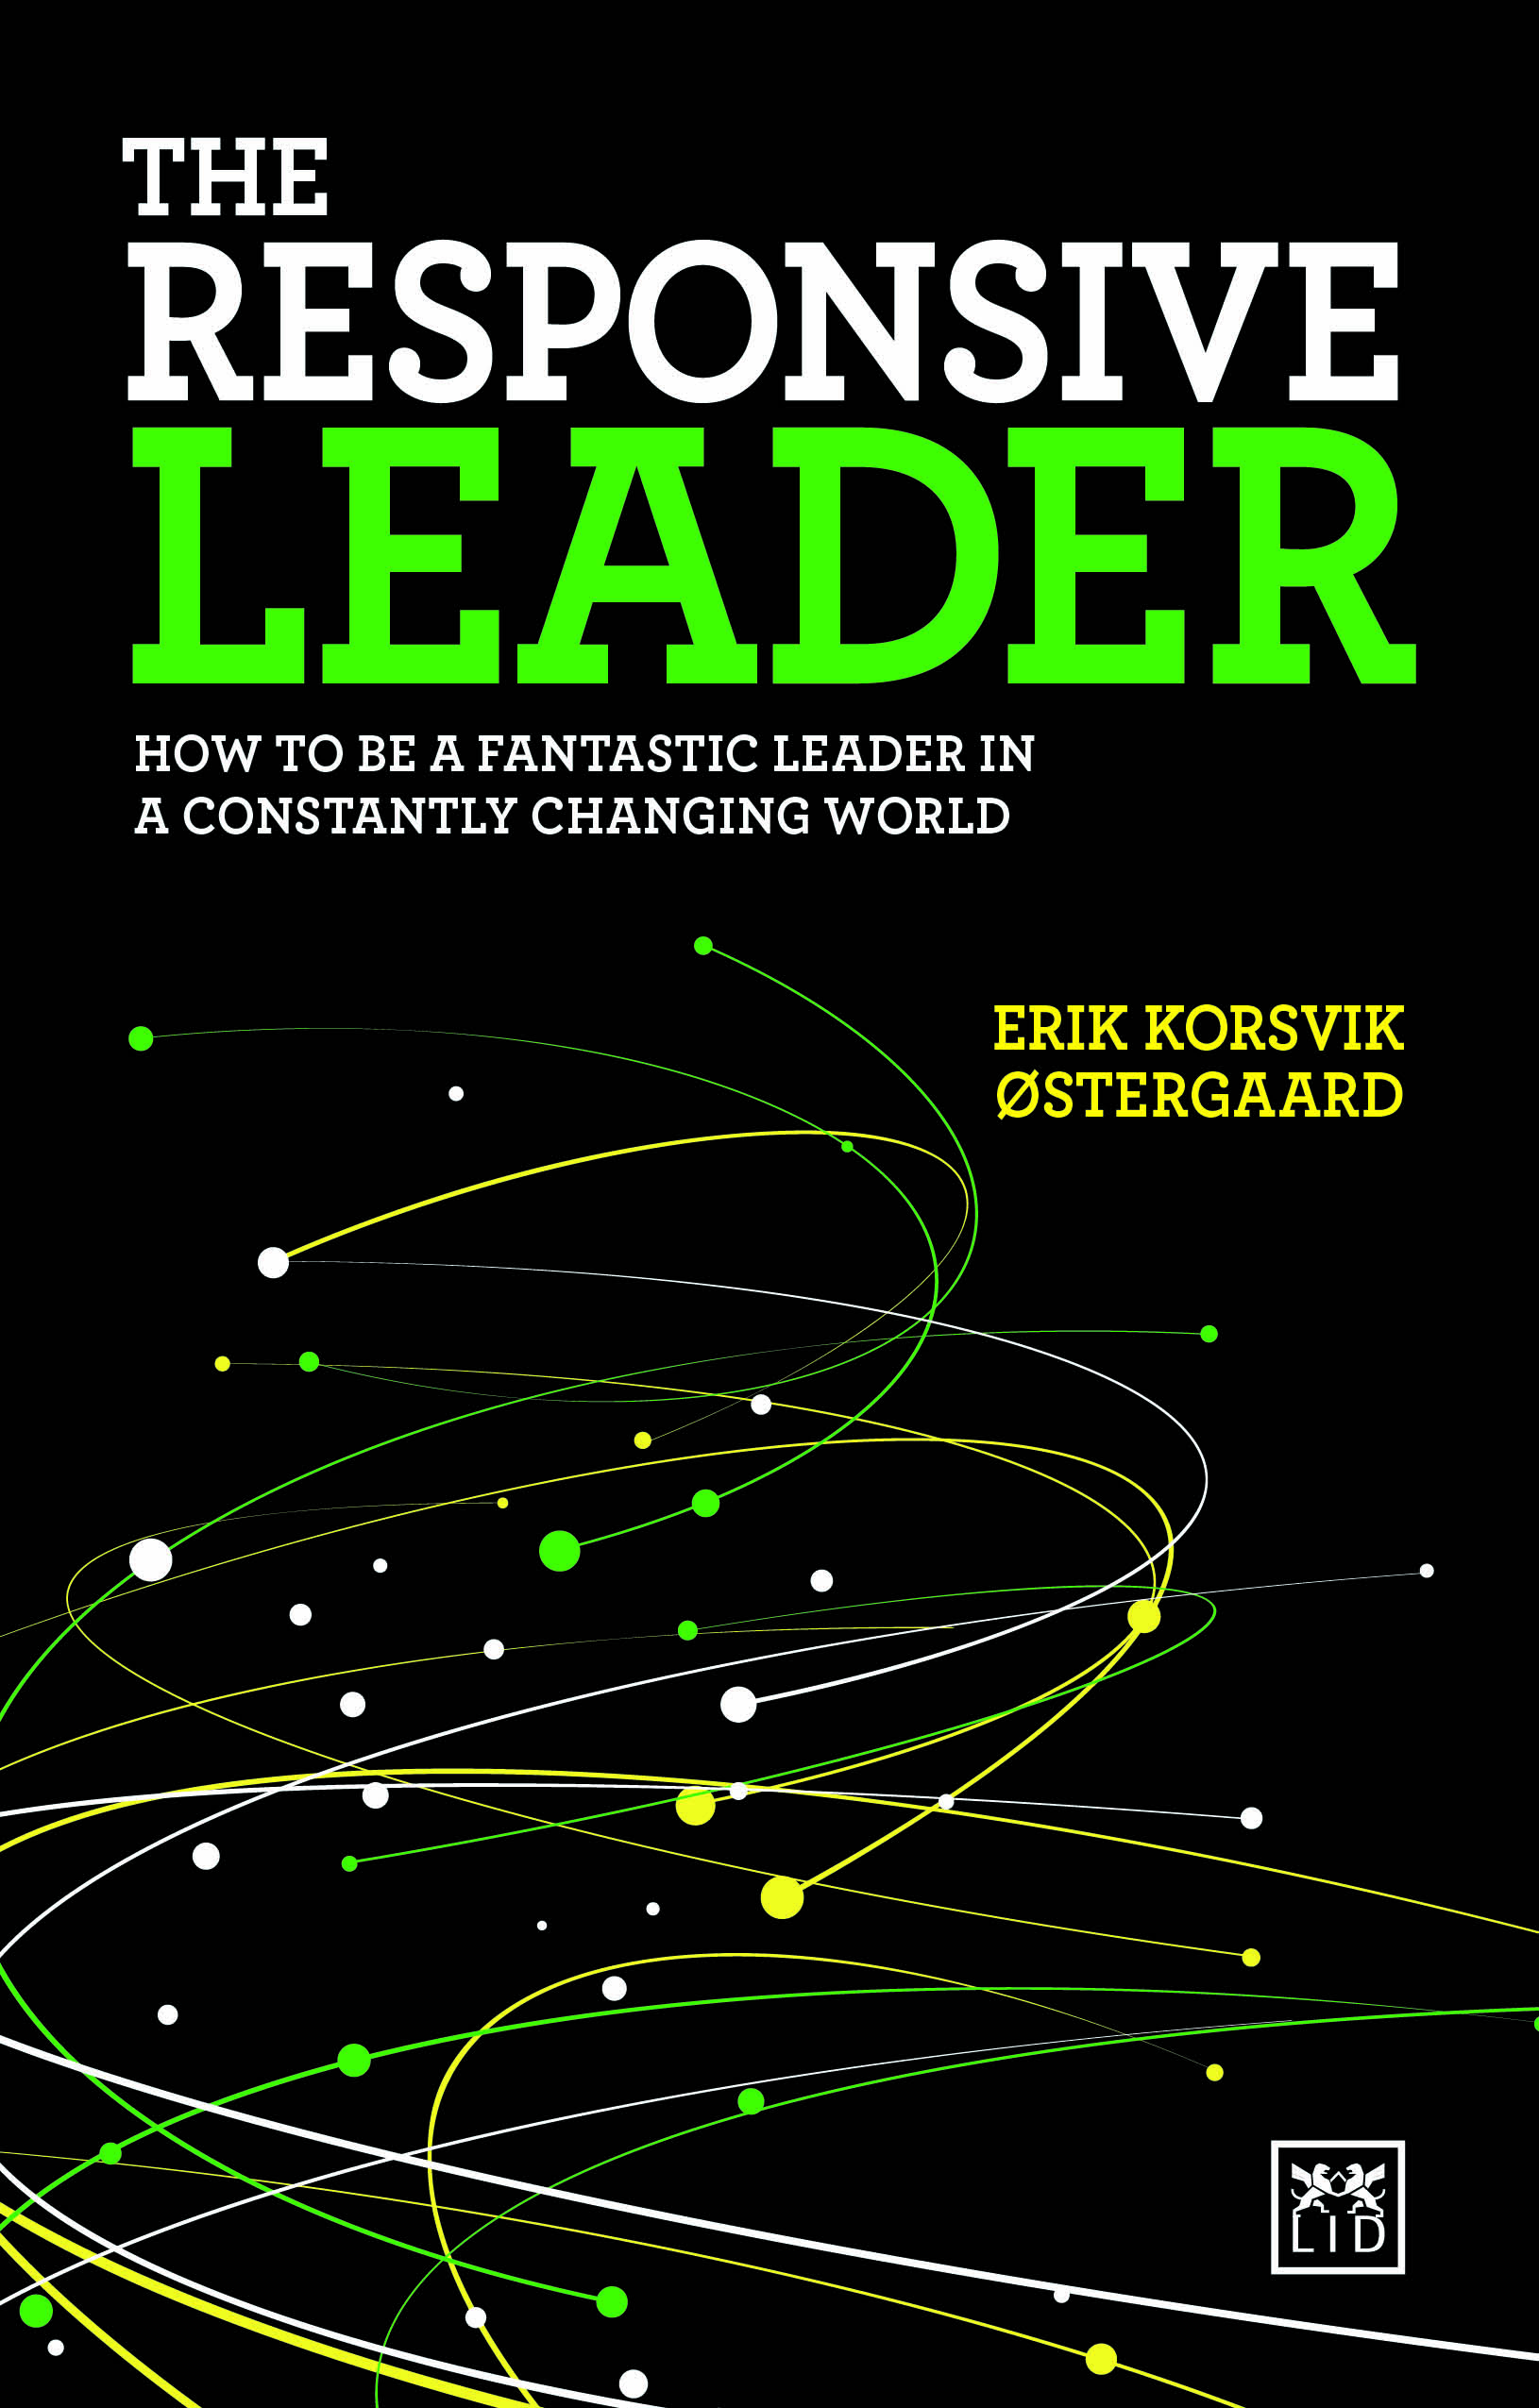 The Responsive Leader: How to Be a Fantastic Leader in a Constantly Changing World